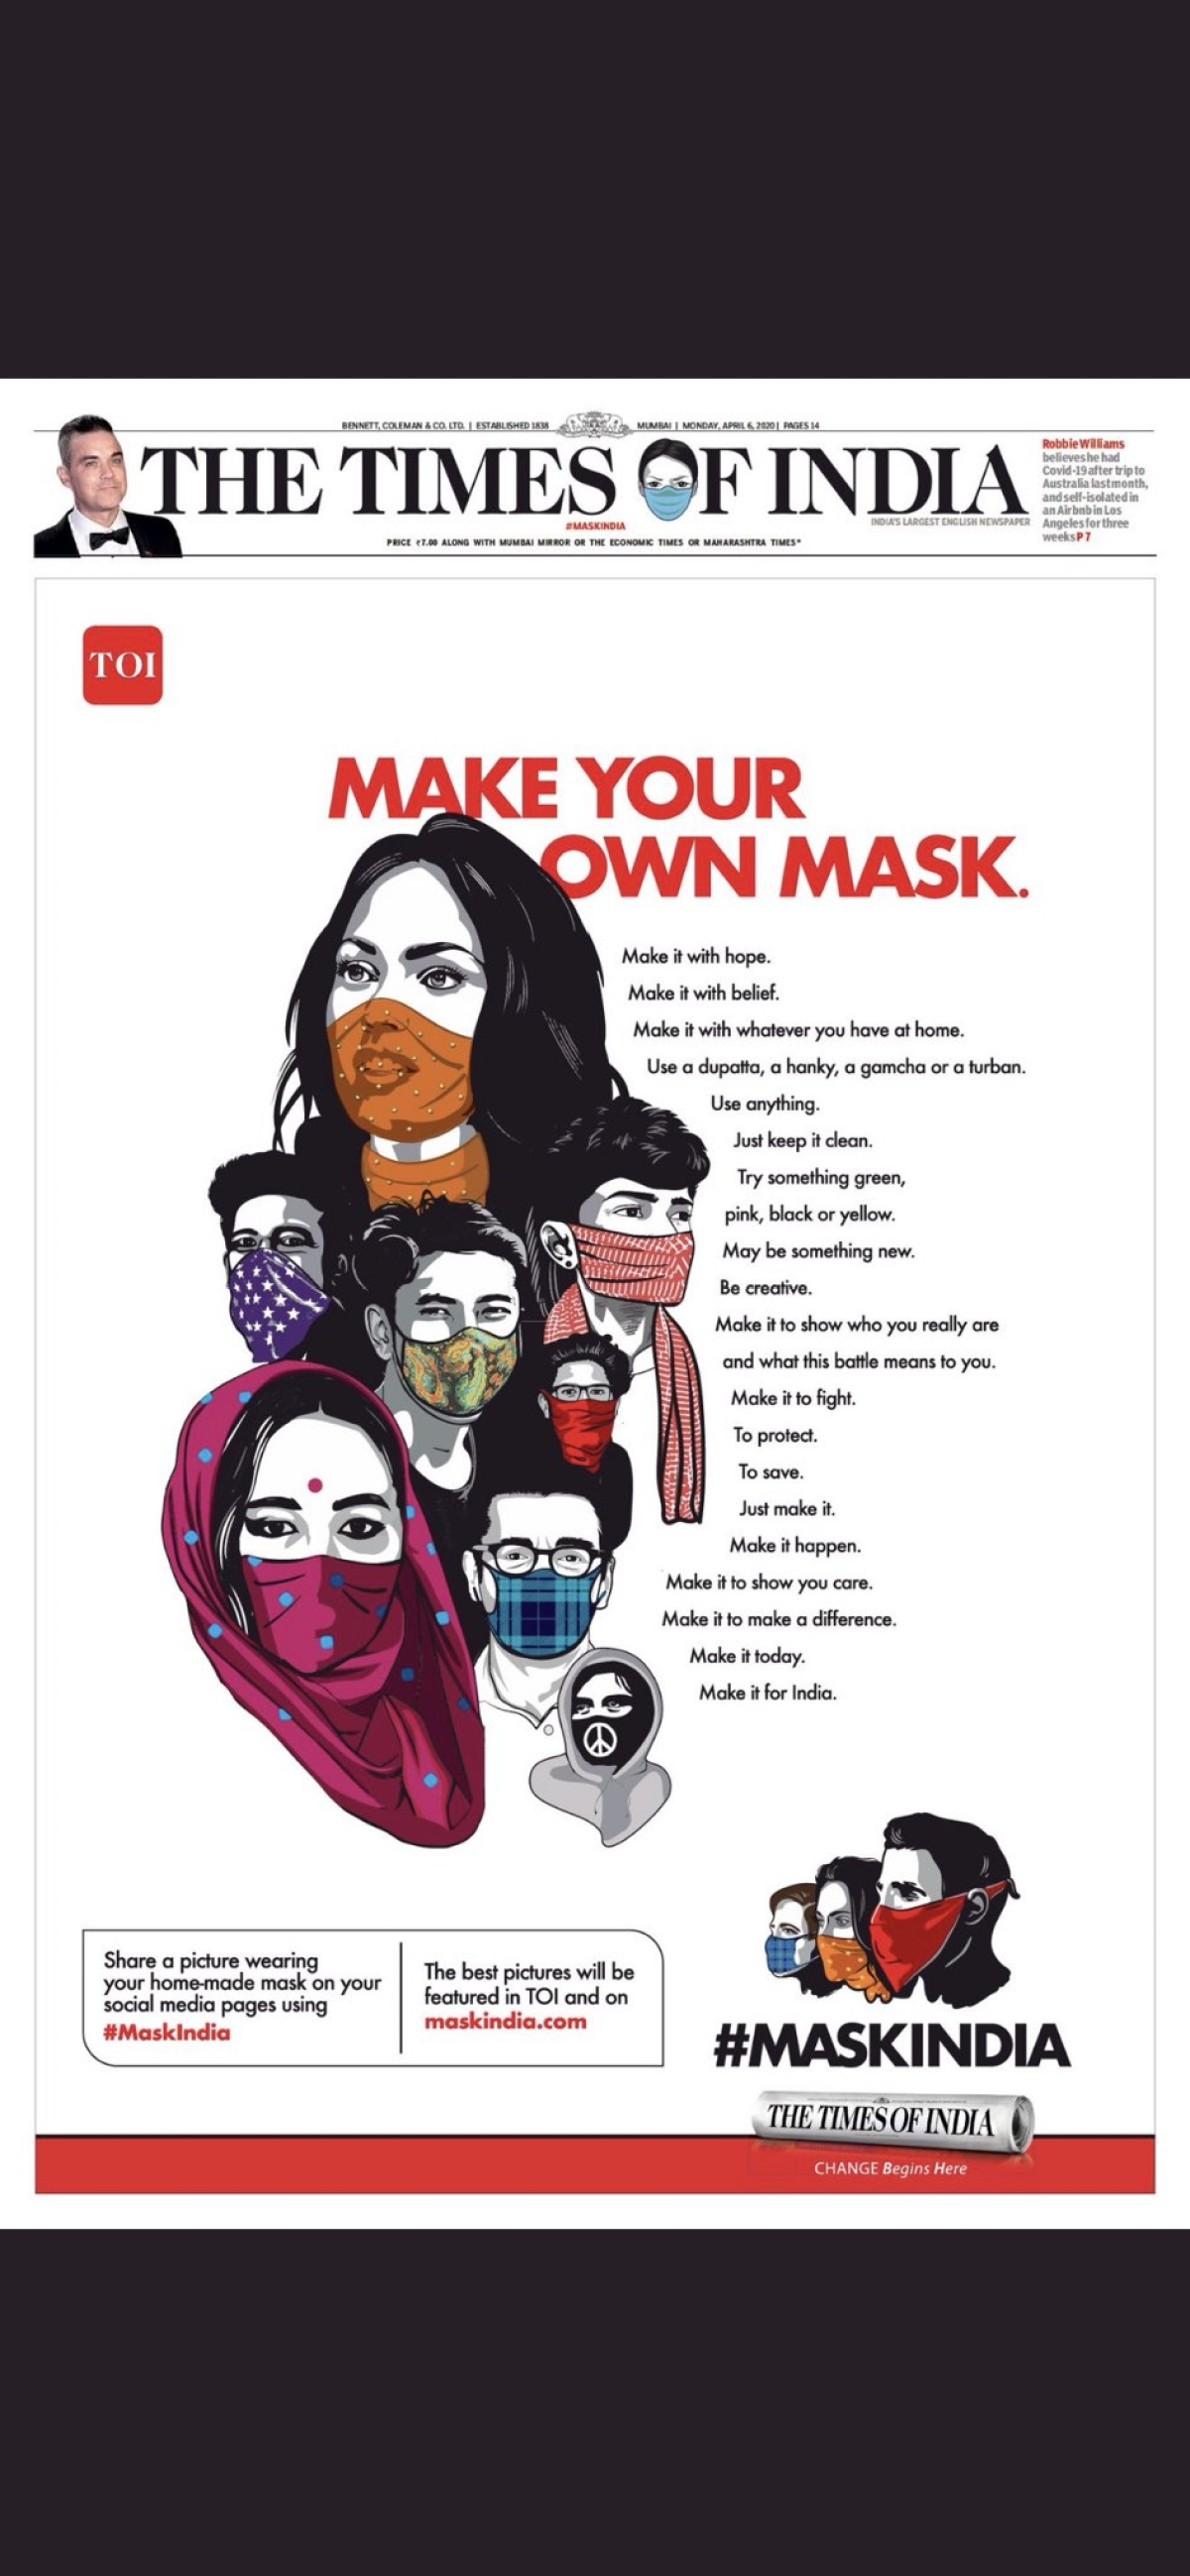 The Times of India encourages people to make their own face masks...